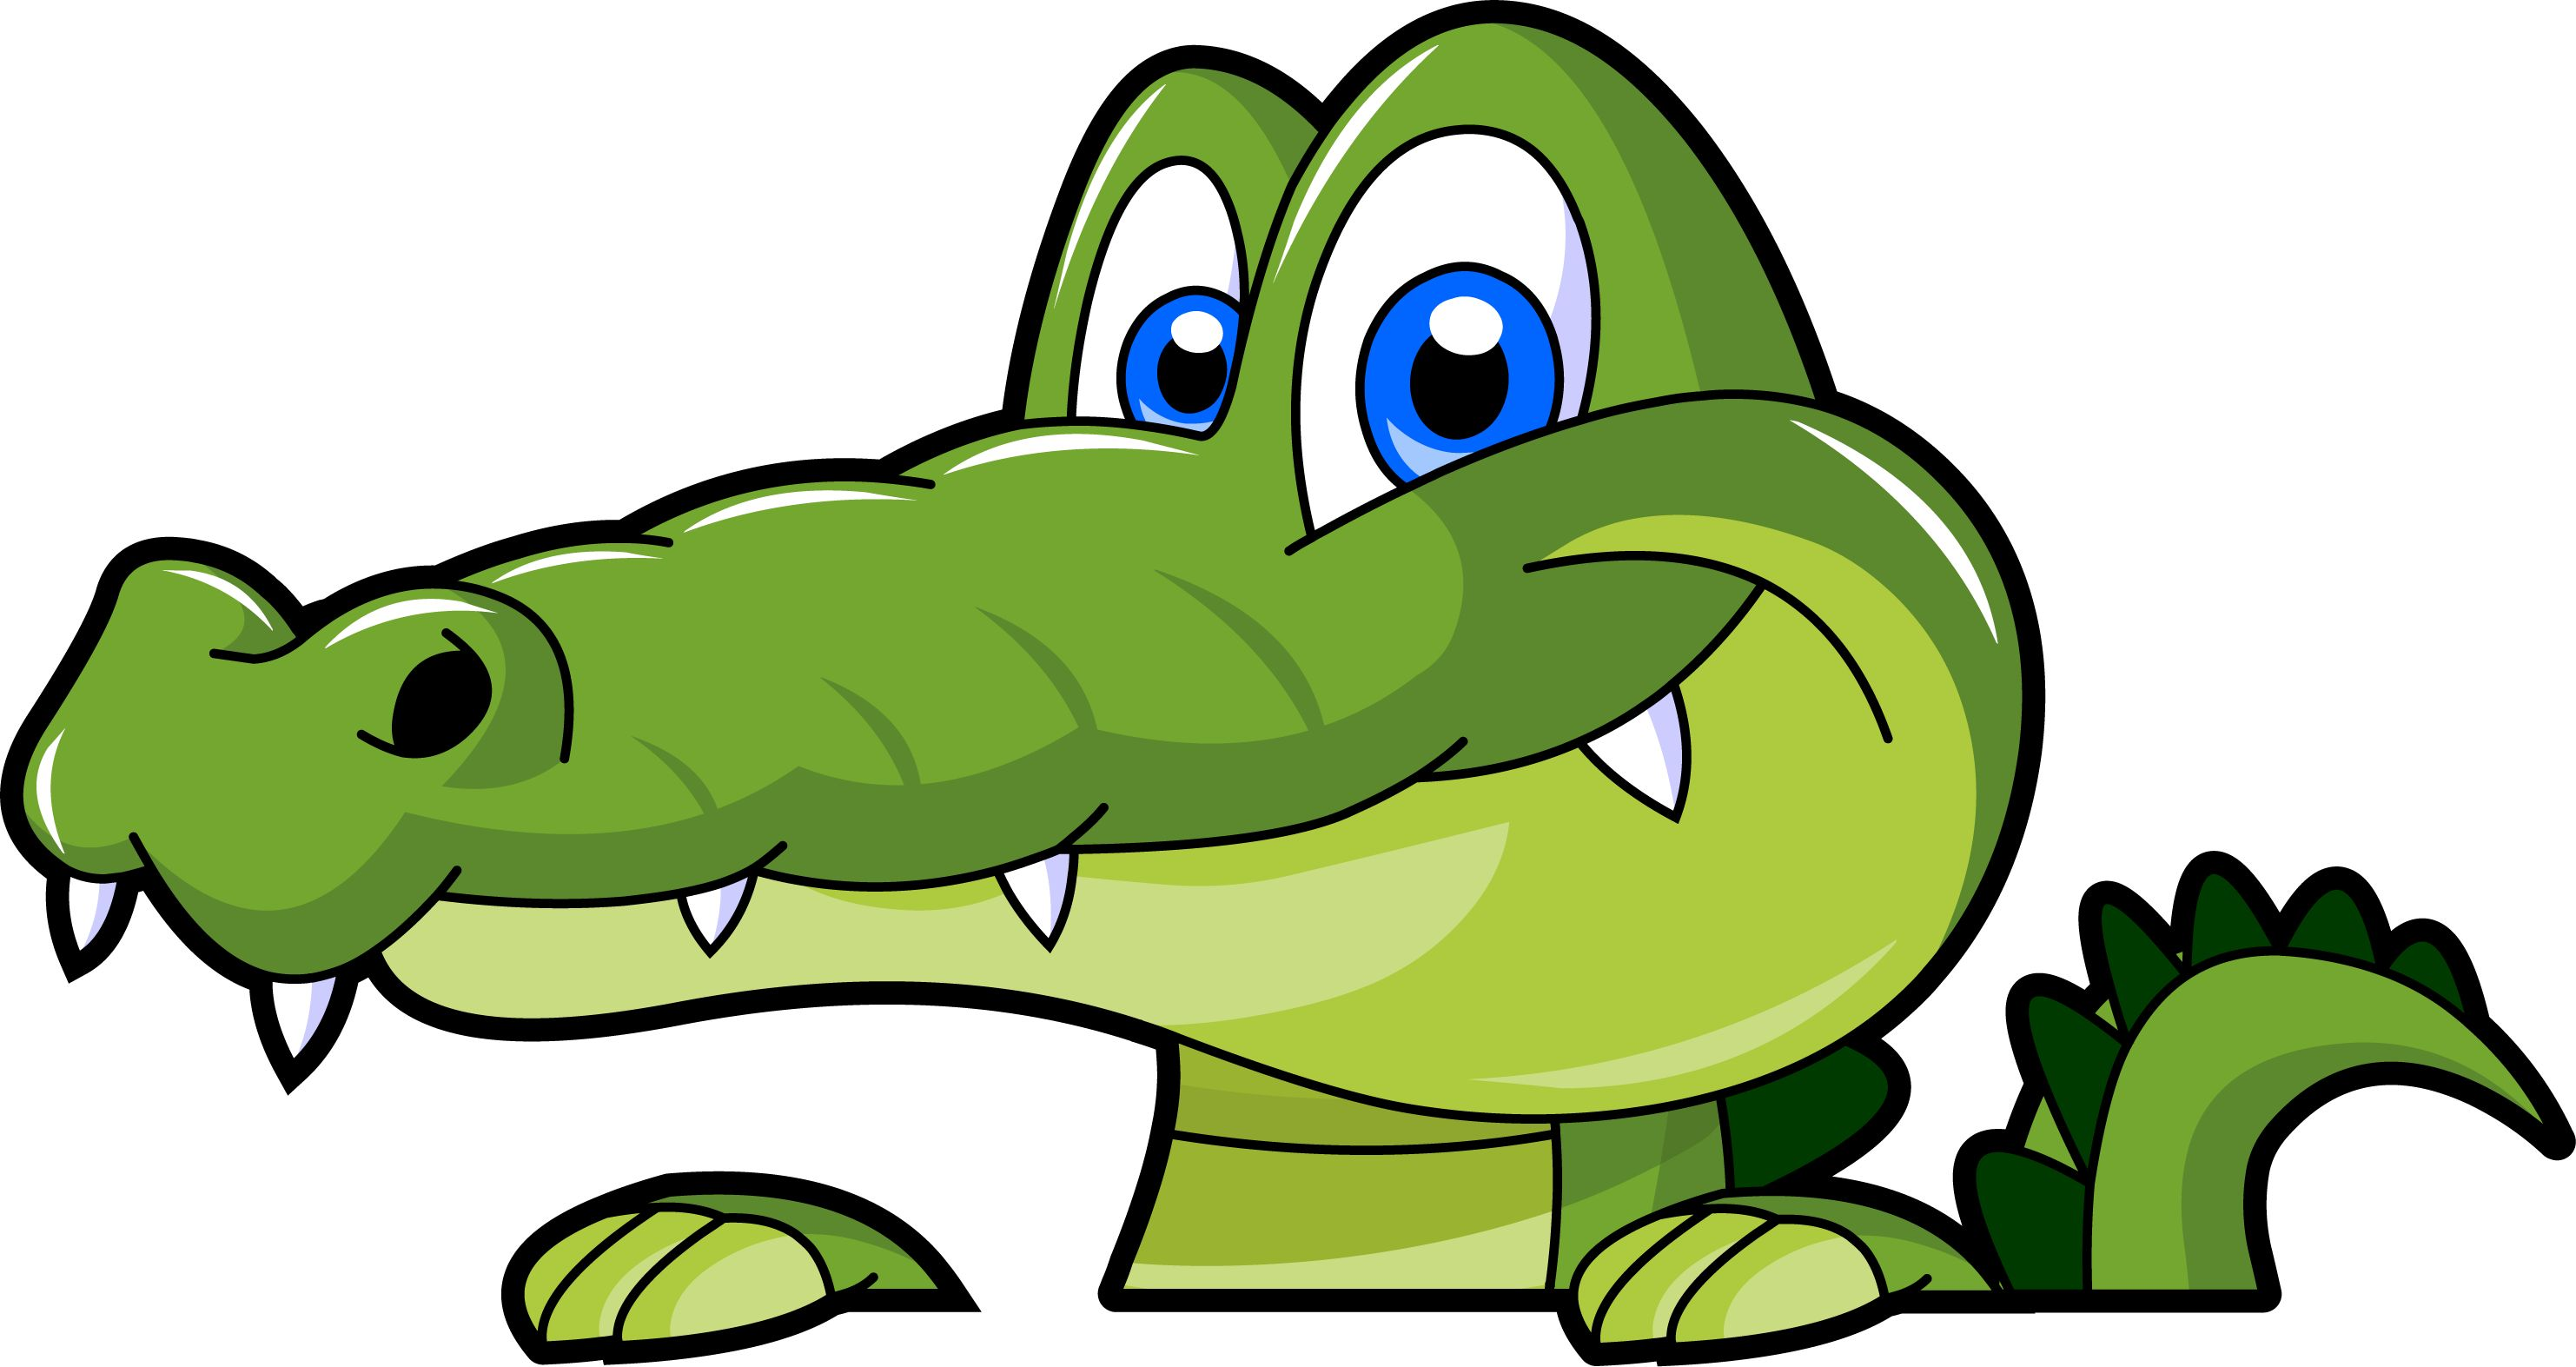 Swamp alligator cartoon clipart image clipartall